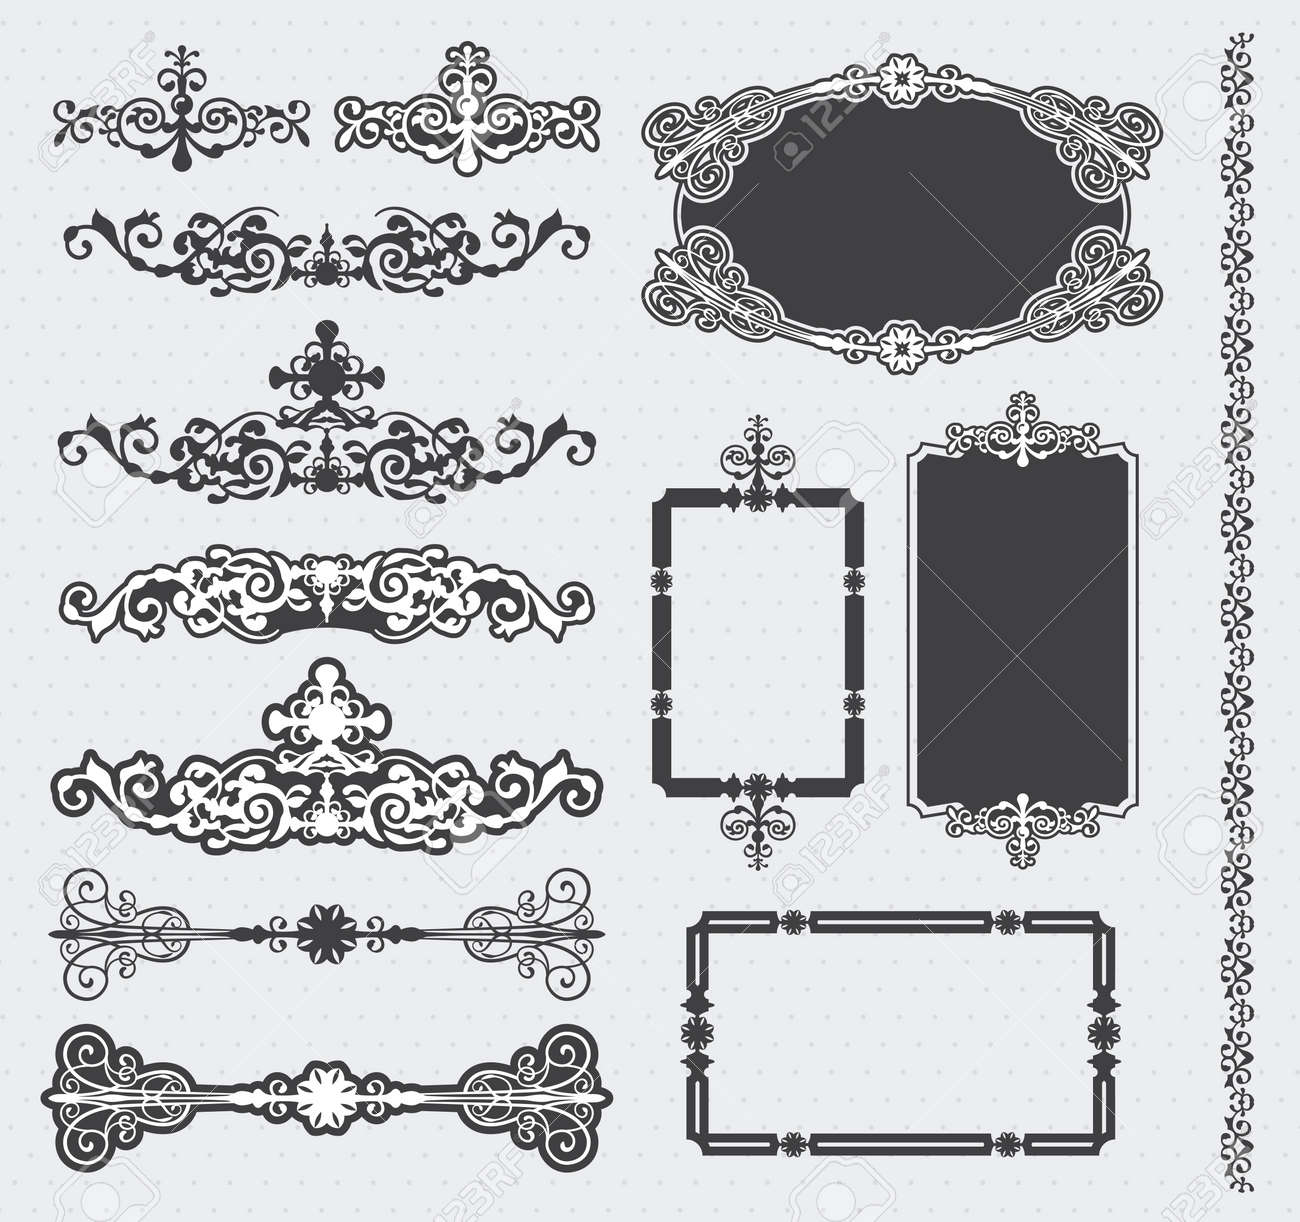 Vintage Frame Set Stock Vector - 17659105